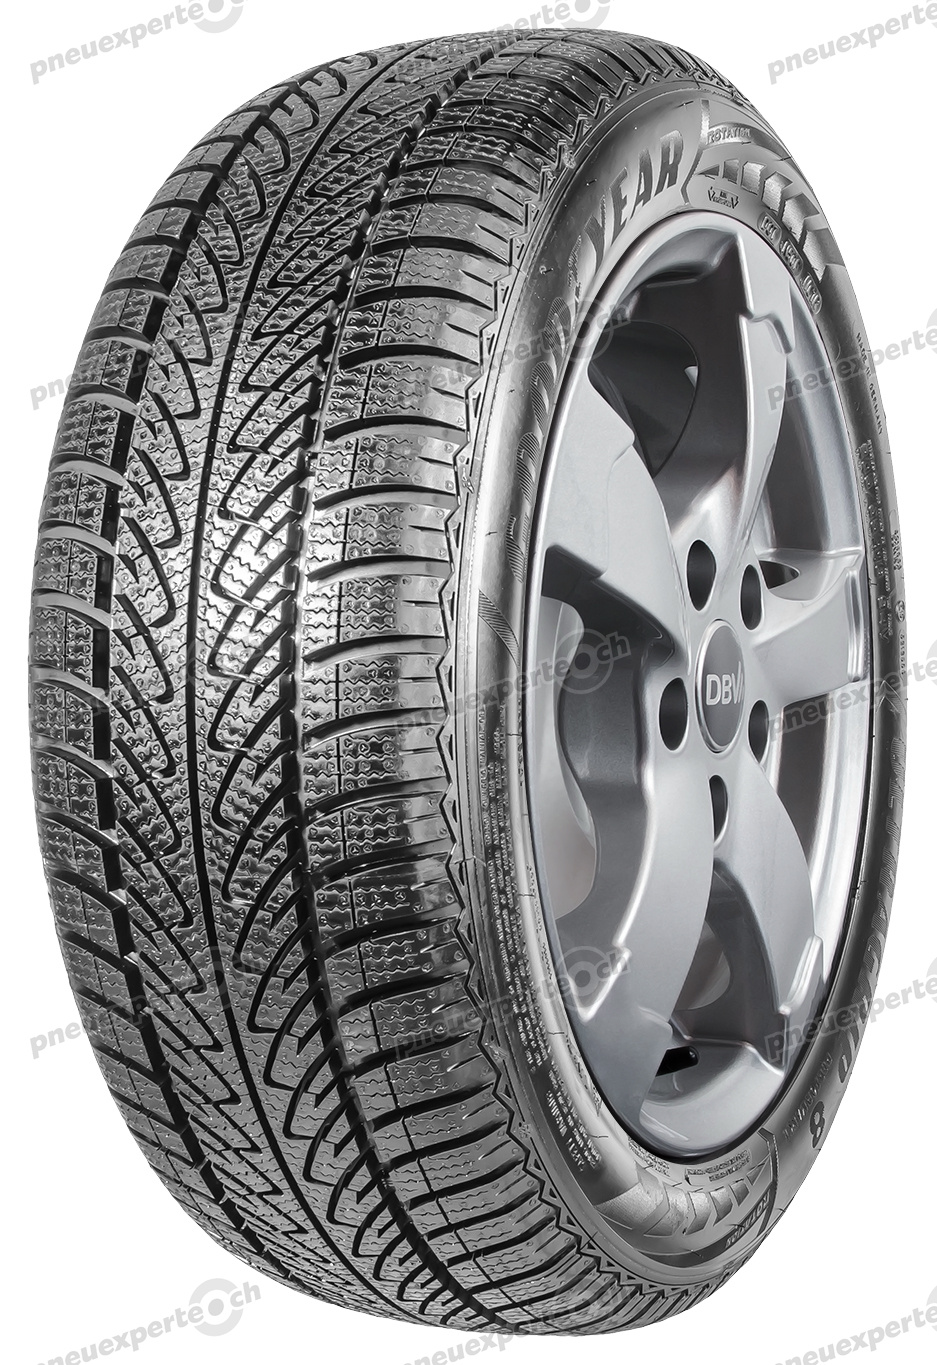 225/55 R17 97H Ultra Grip 8 Performance FP  Ultra Grip 8 Performance FP